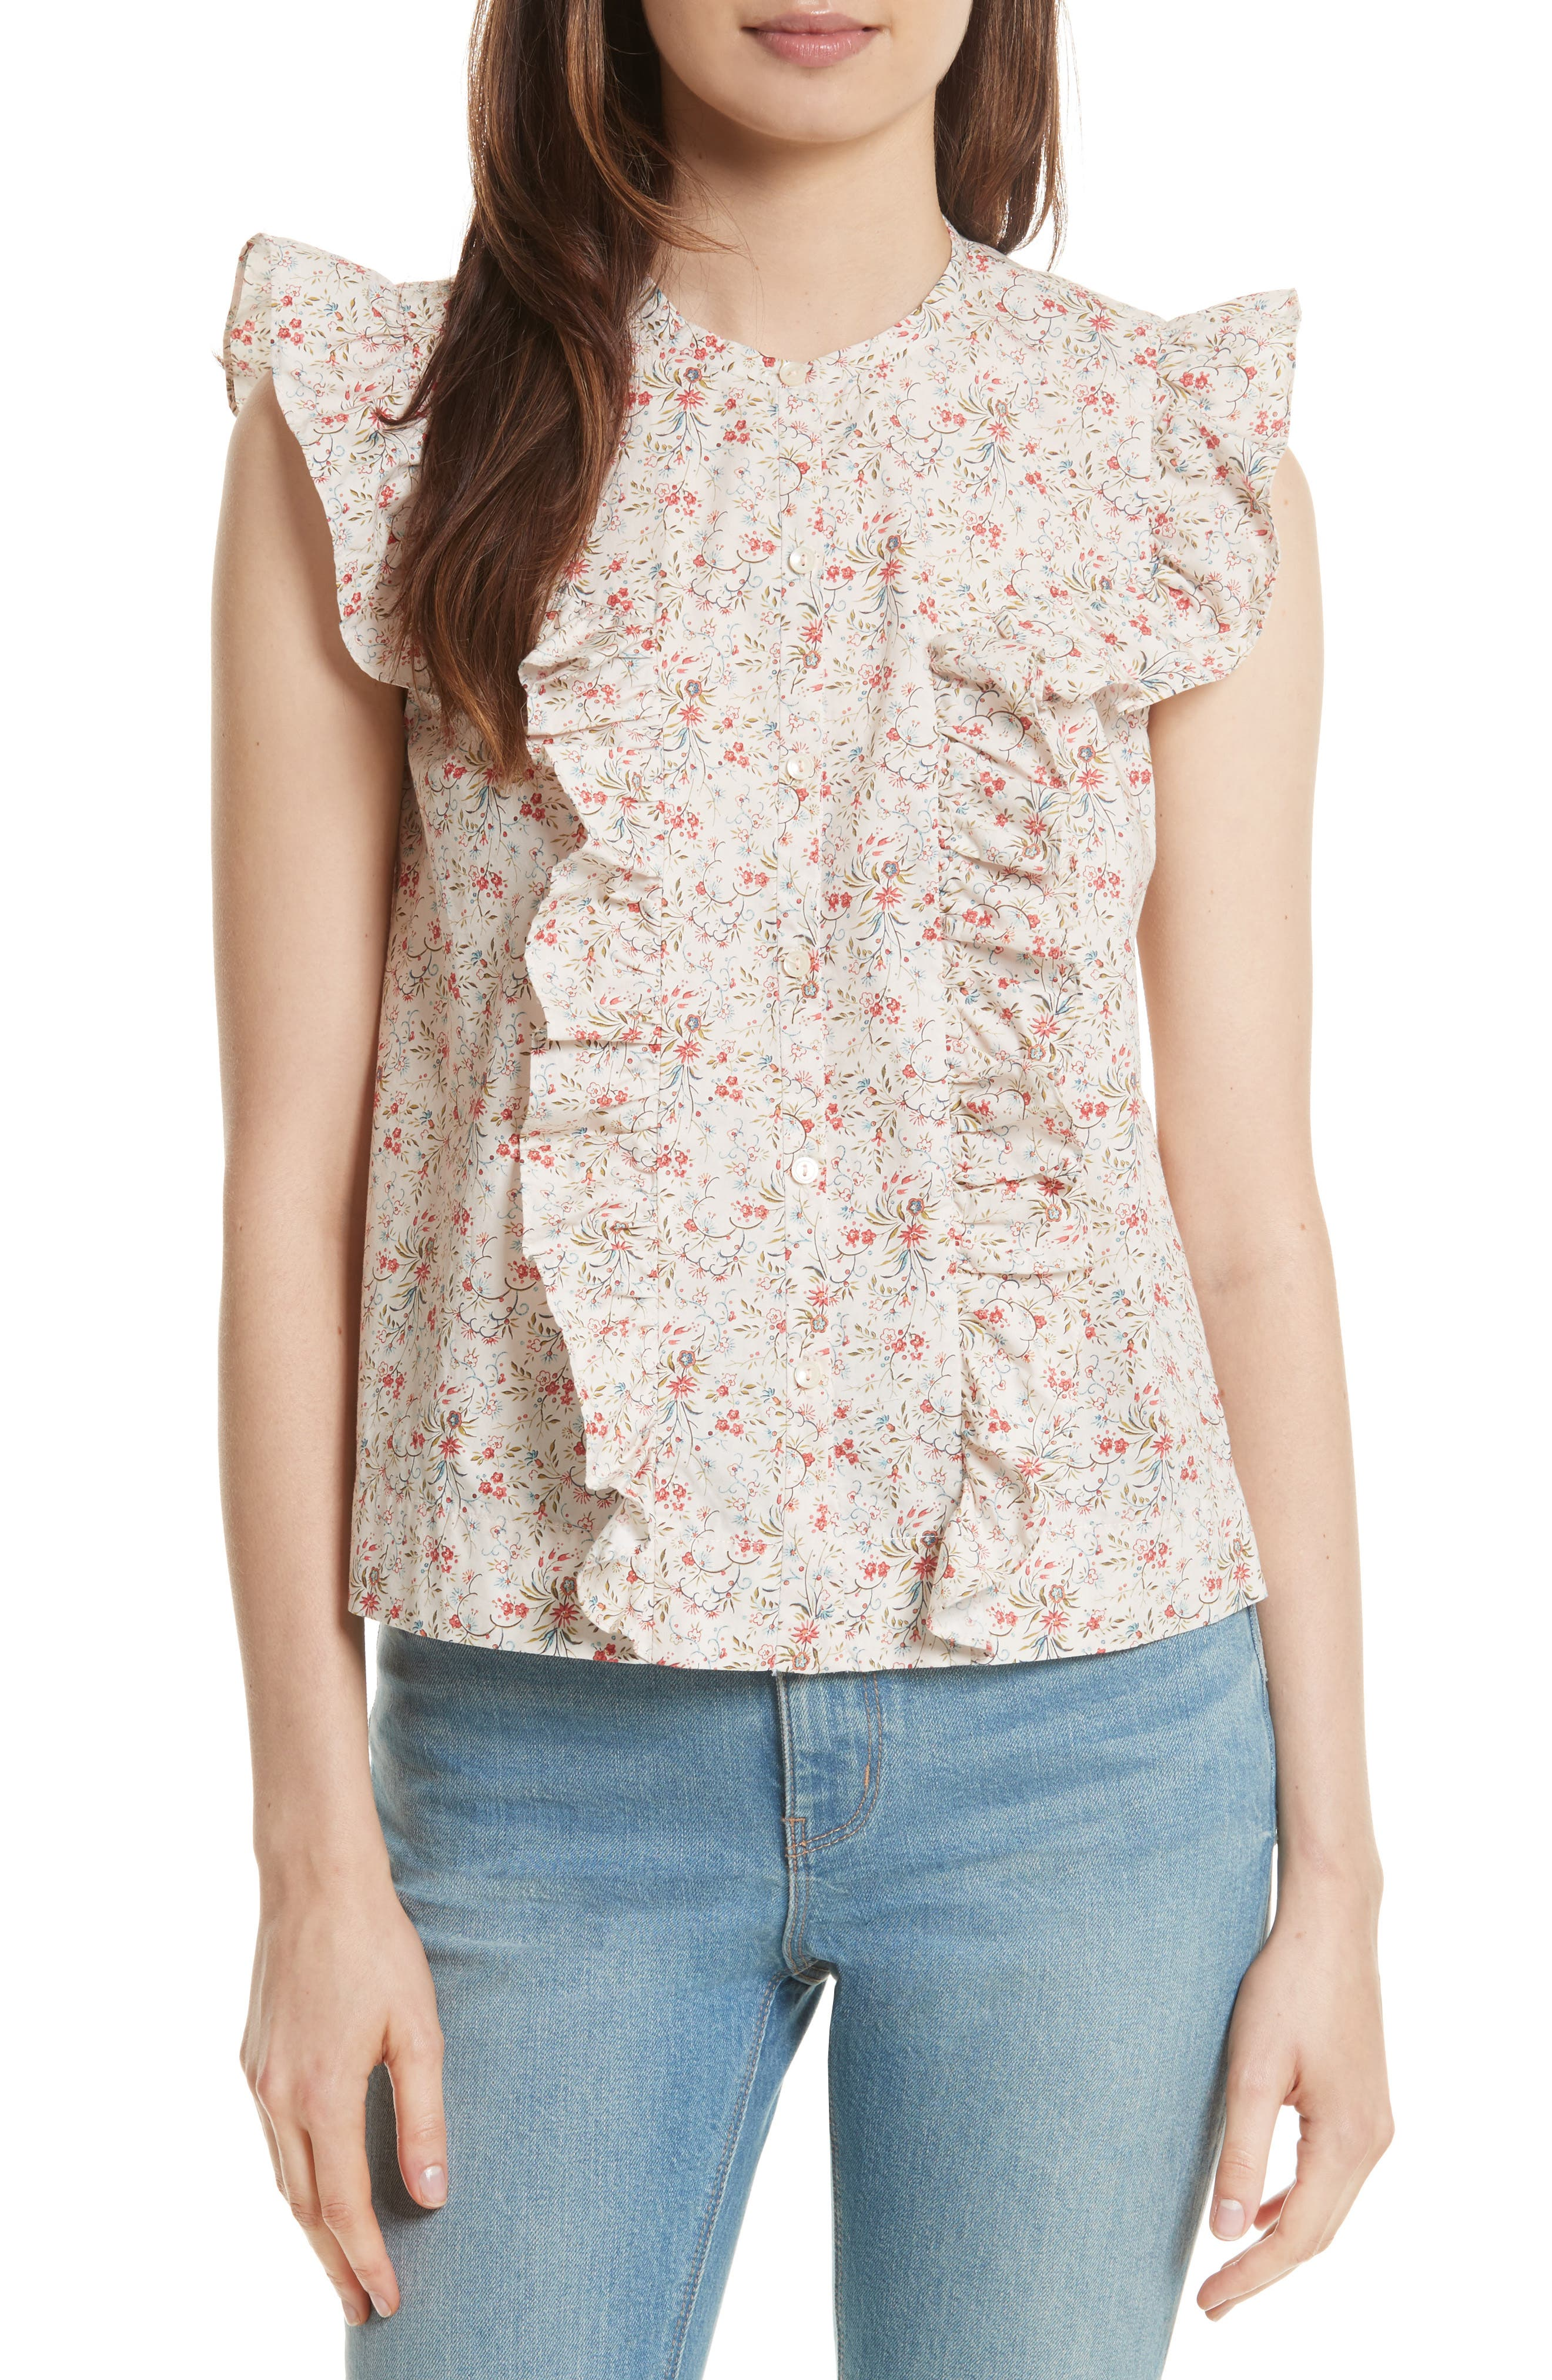 Main Image - La Vie Rebecca Taylor Brittany Sleeveless Floral Blouse